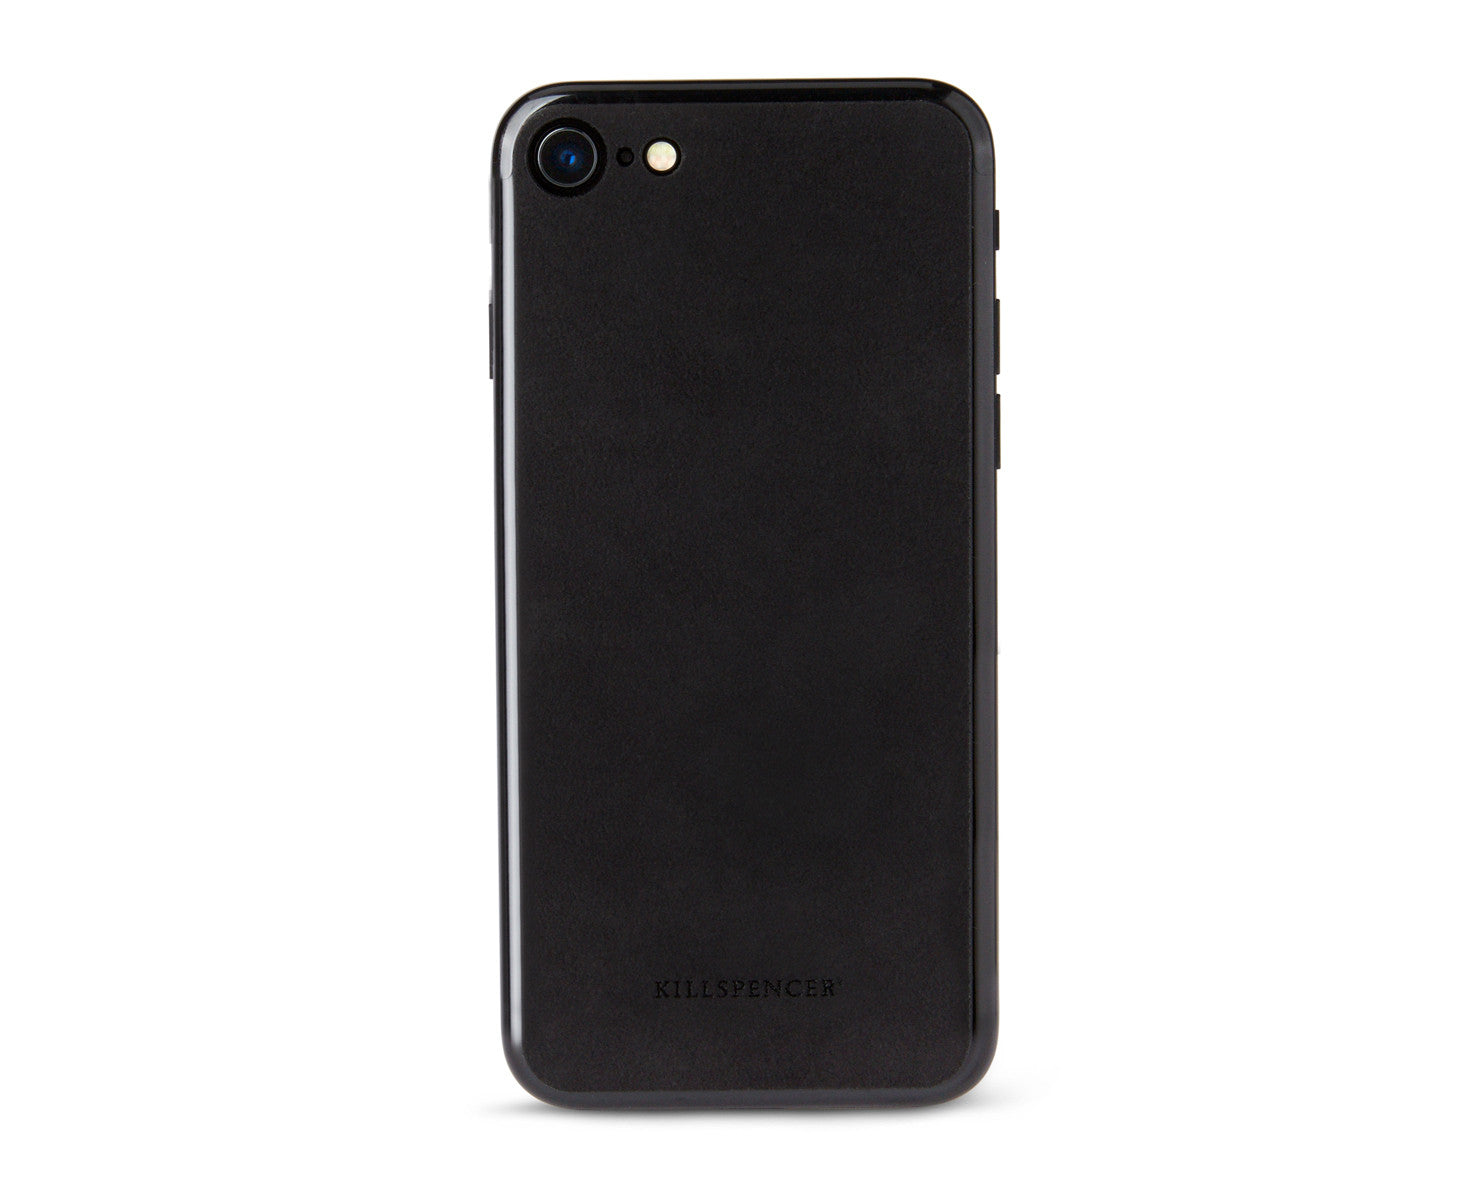 IPHONE 7 VEIL | KILLSPENCER® - Midnight Black Alcantara